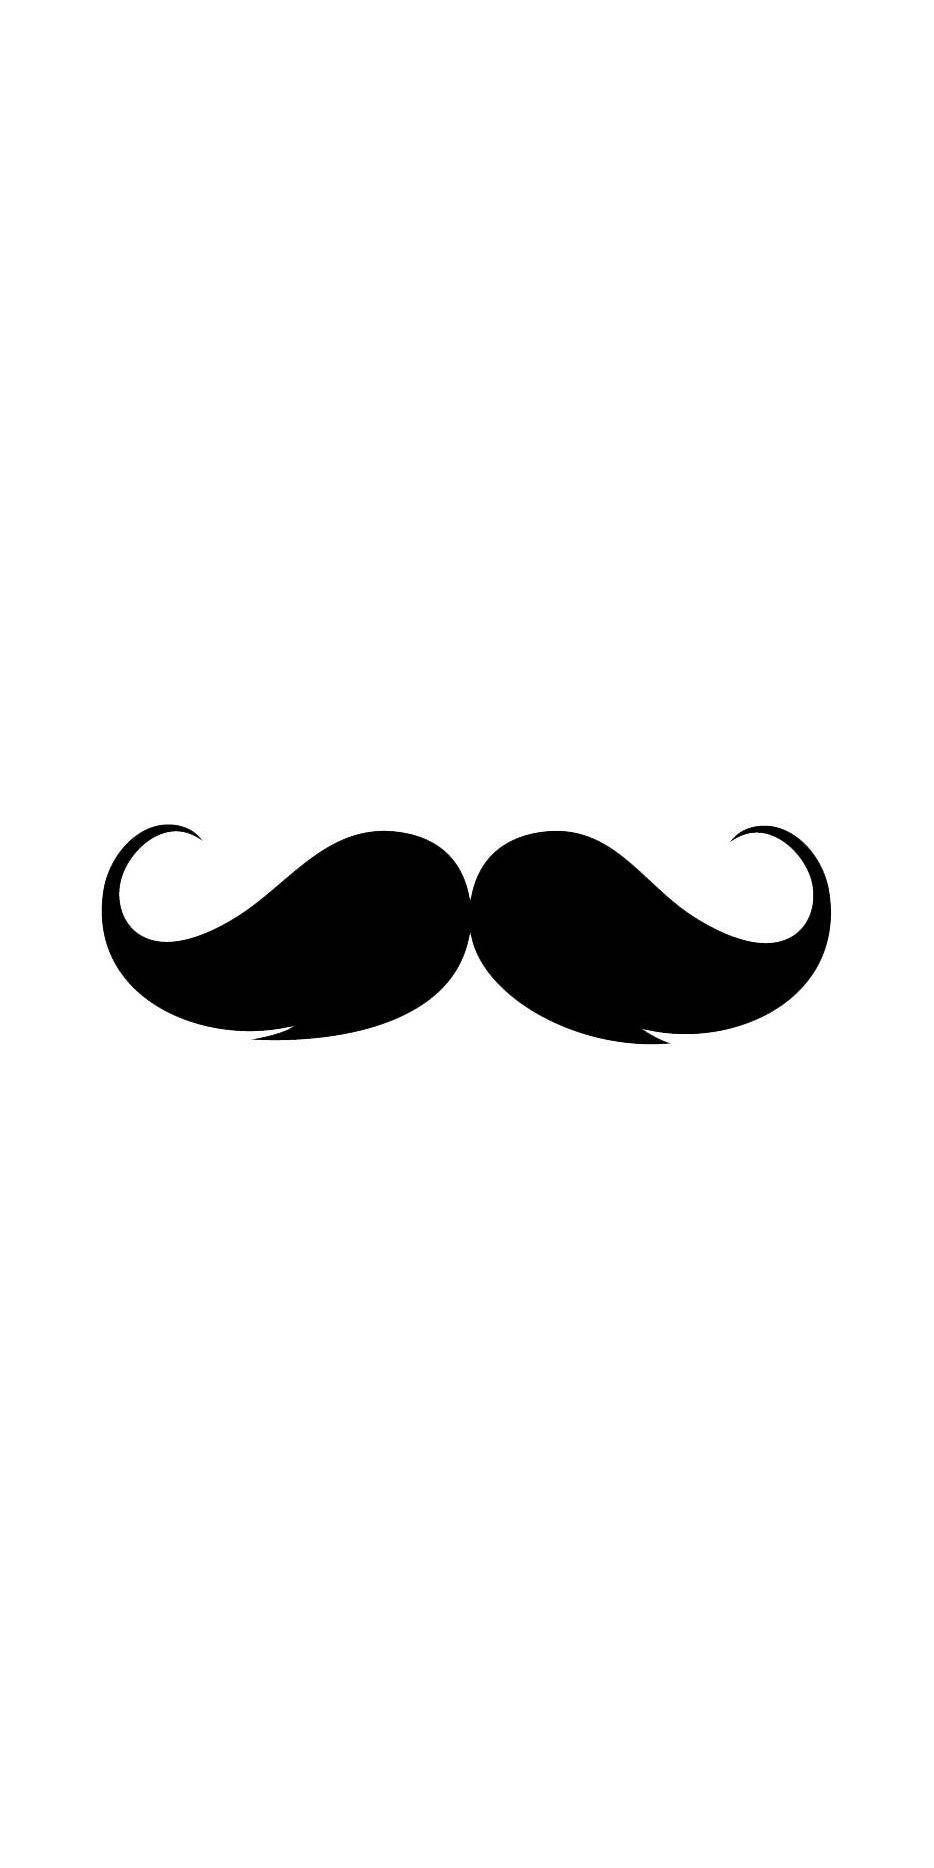 Cute Mustache iPhone Wallpapers - Top